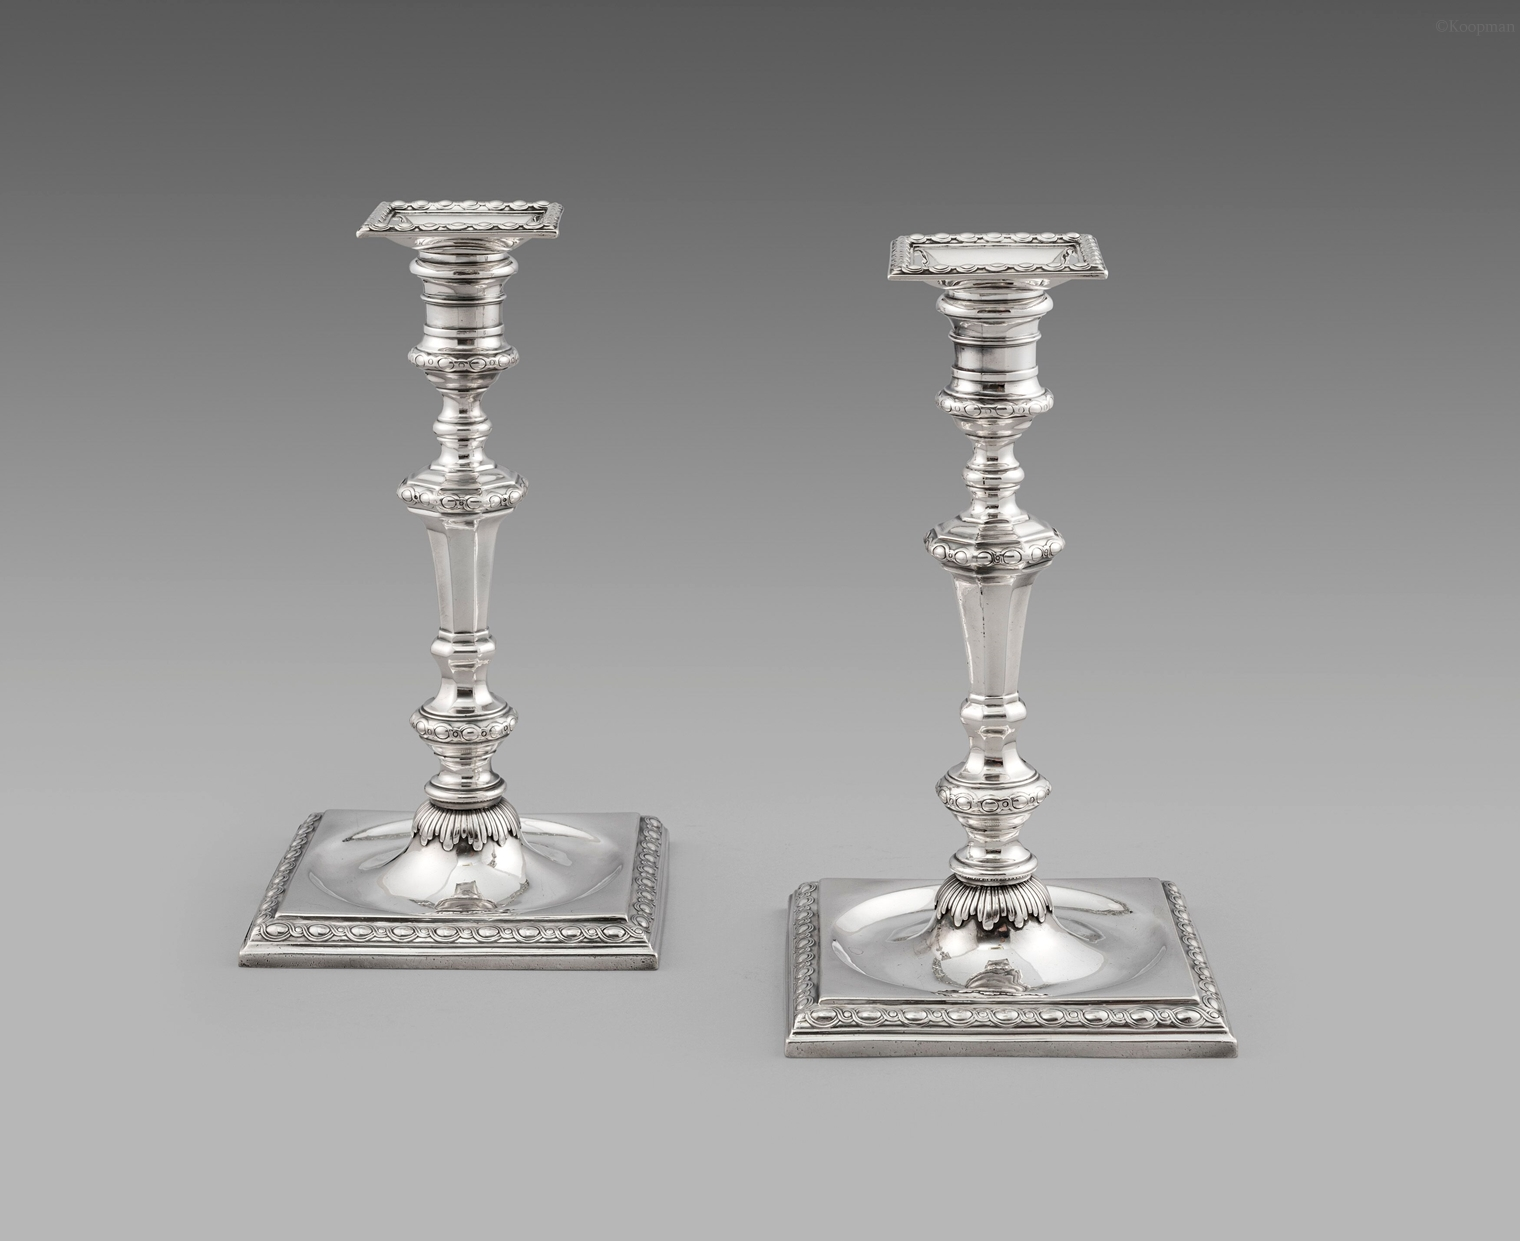 A Pair of George III Square-based Neo-Classical Candlesticks